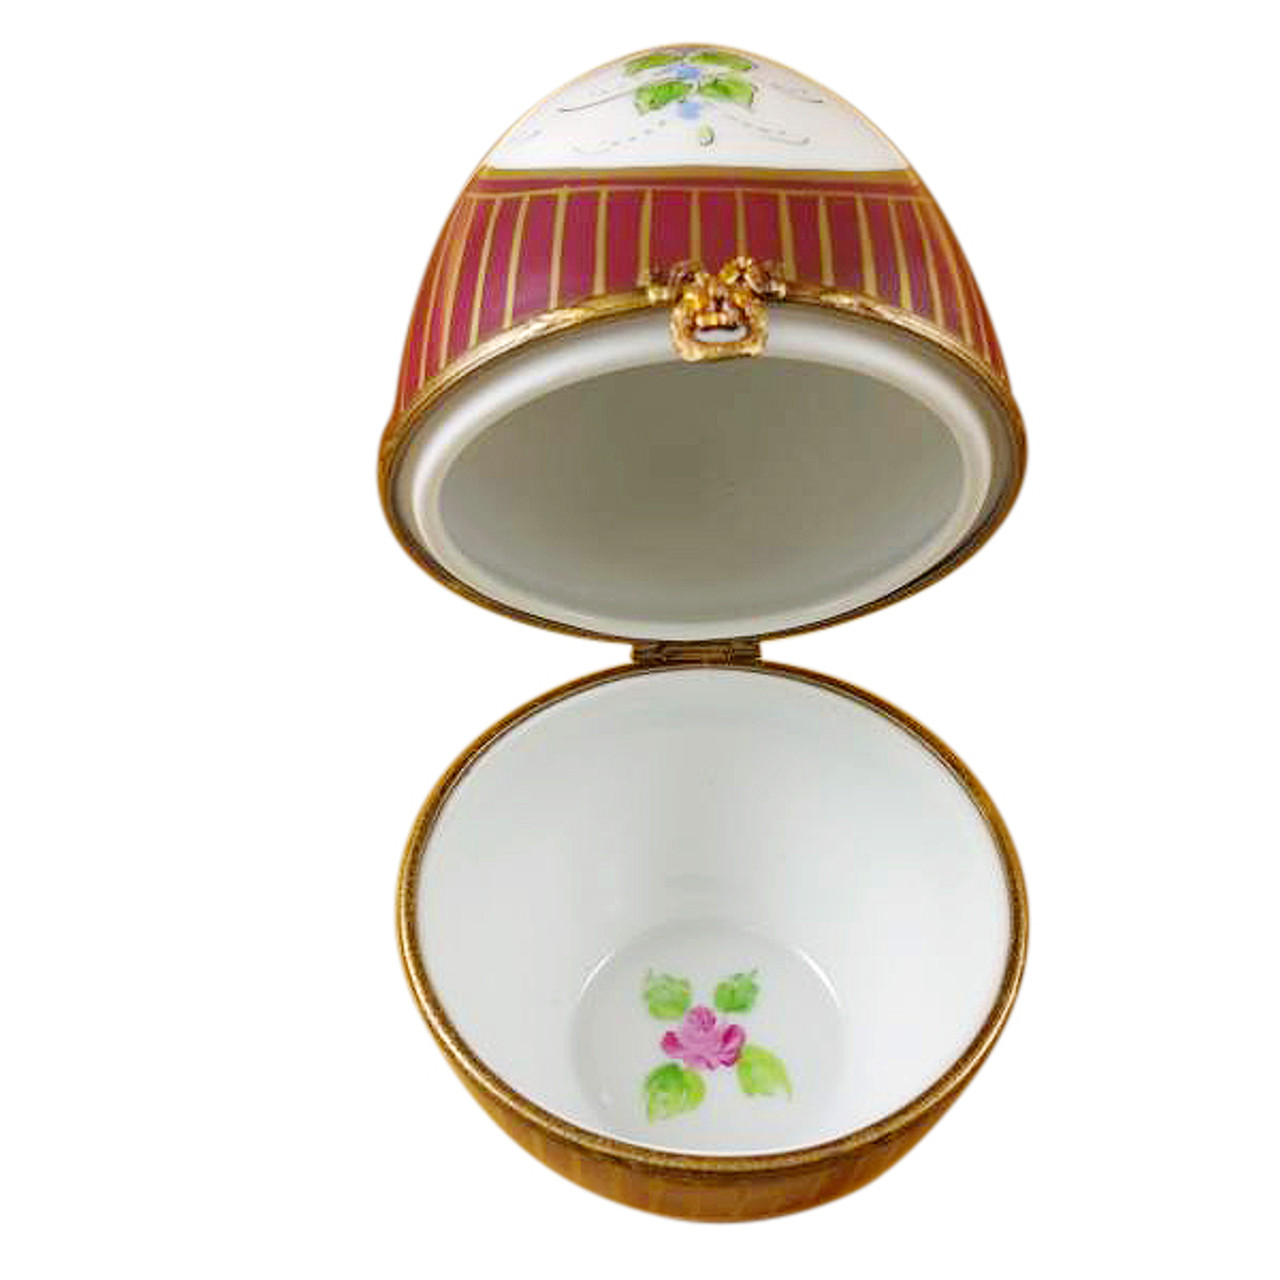 Limoges Imports Large Burgundy Egg W/ Flowers Limoges Box